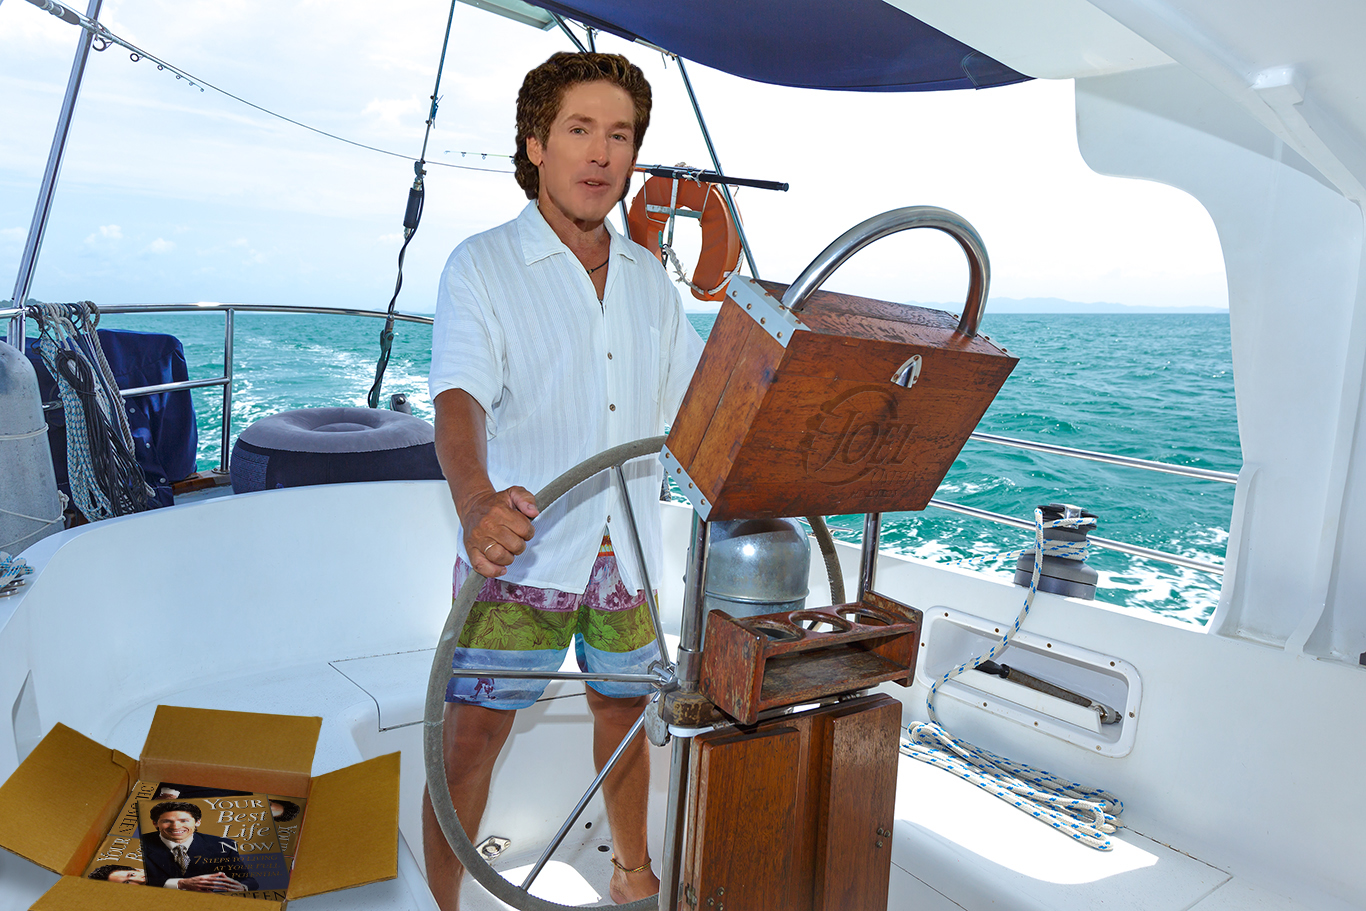 Debunked Fake Joel Osteen Yacht Story Spreads After Hurricane